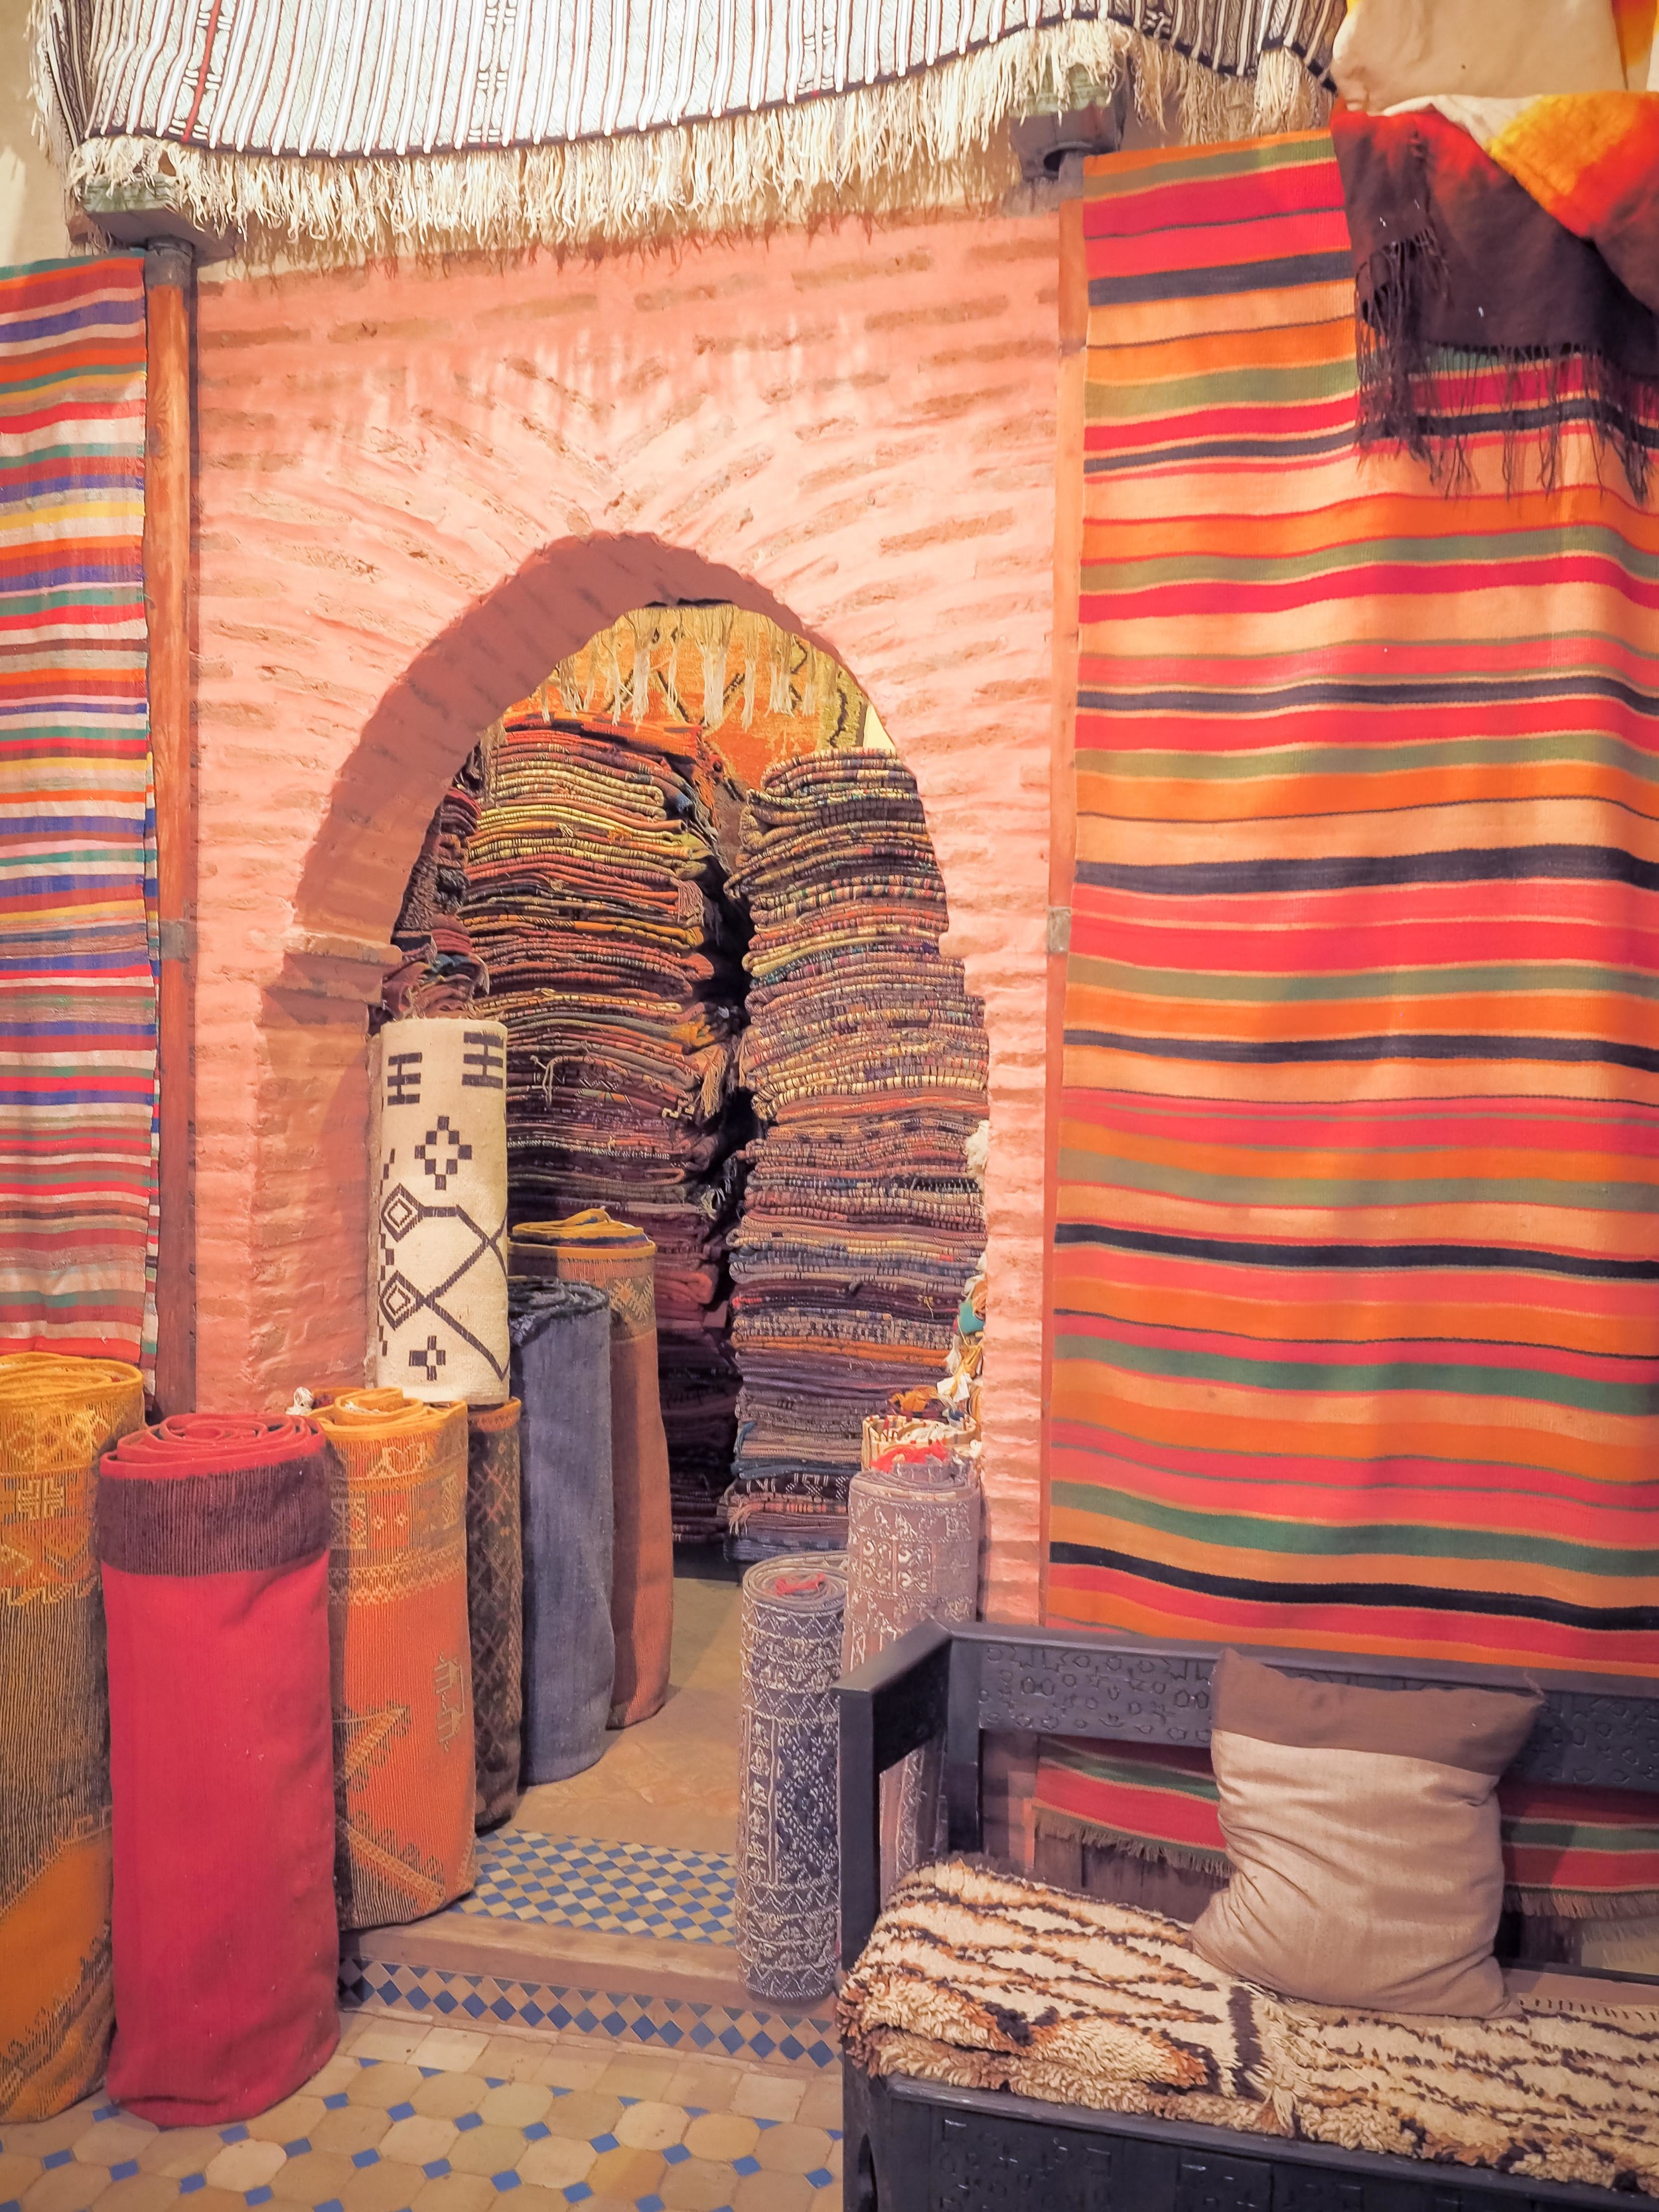 One of the charming little rug rooms.